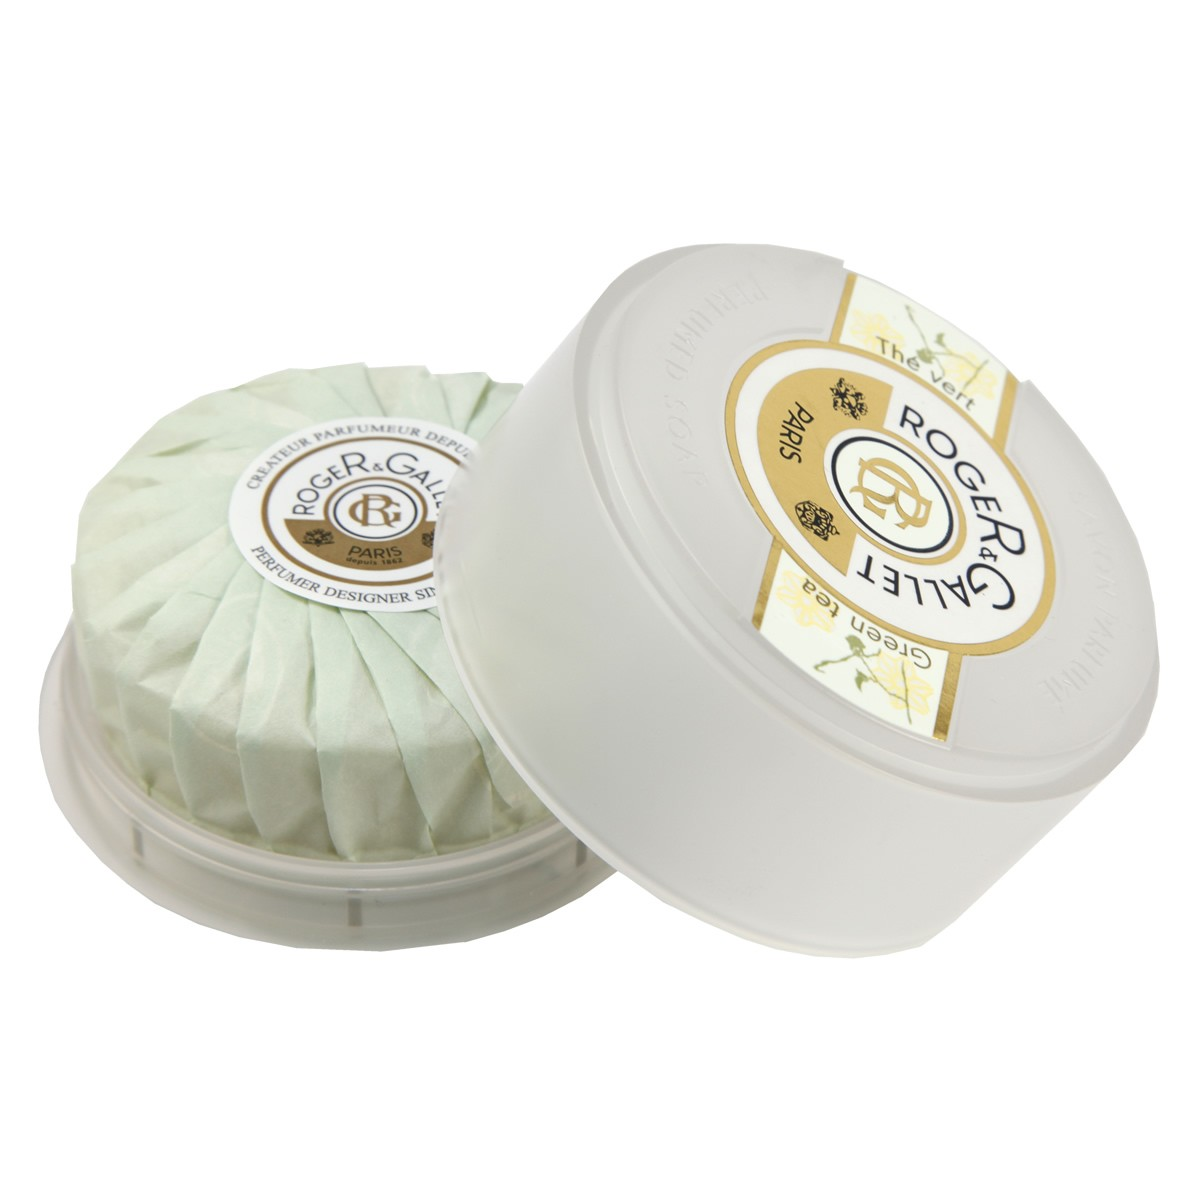 Roger & Gallet Green Tea Soap in Travel Box